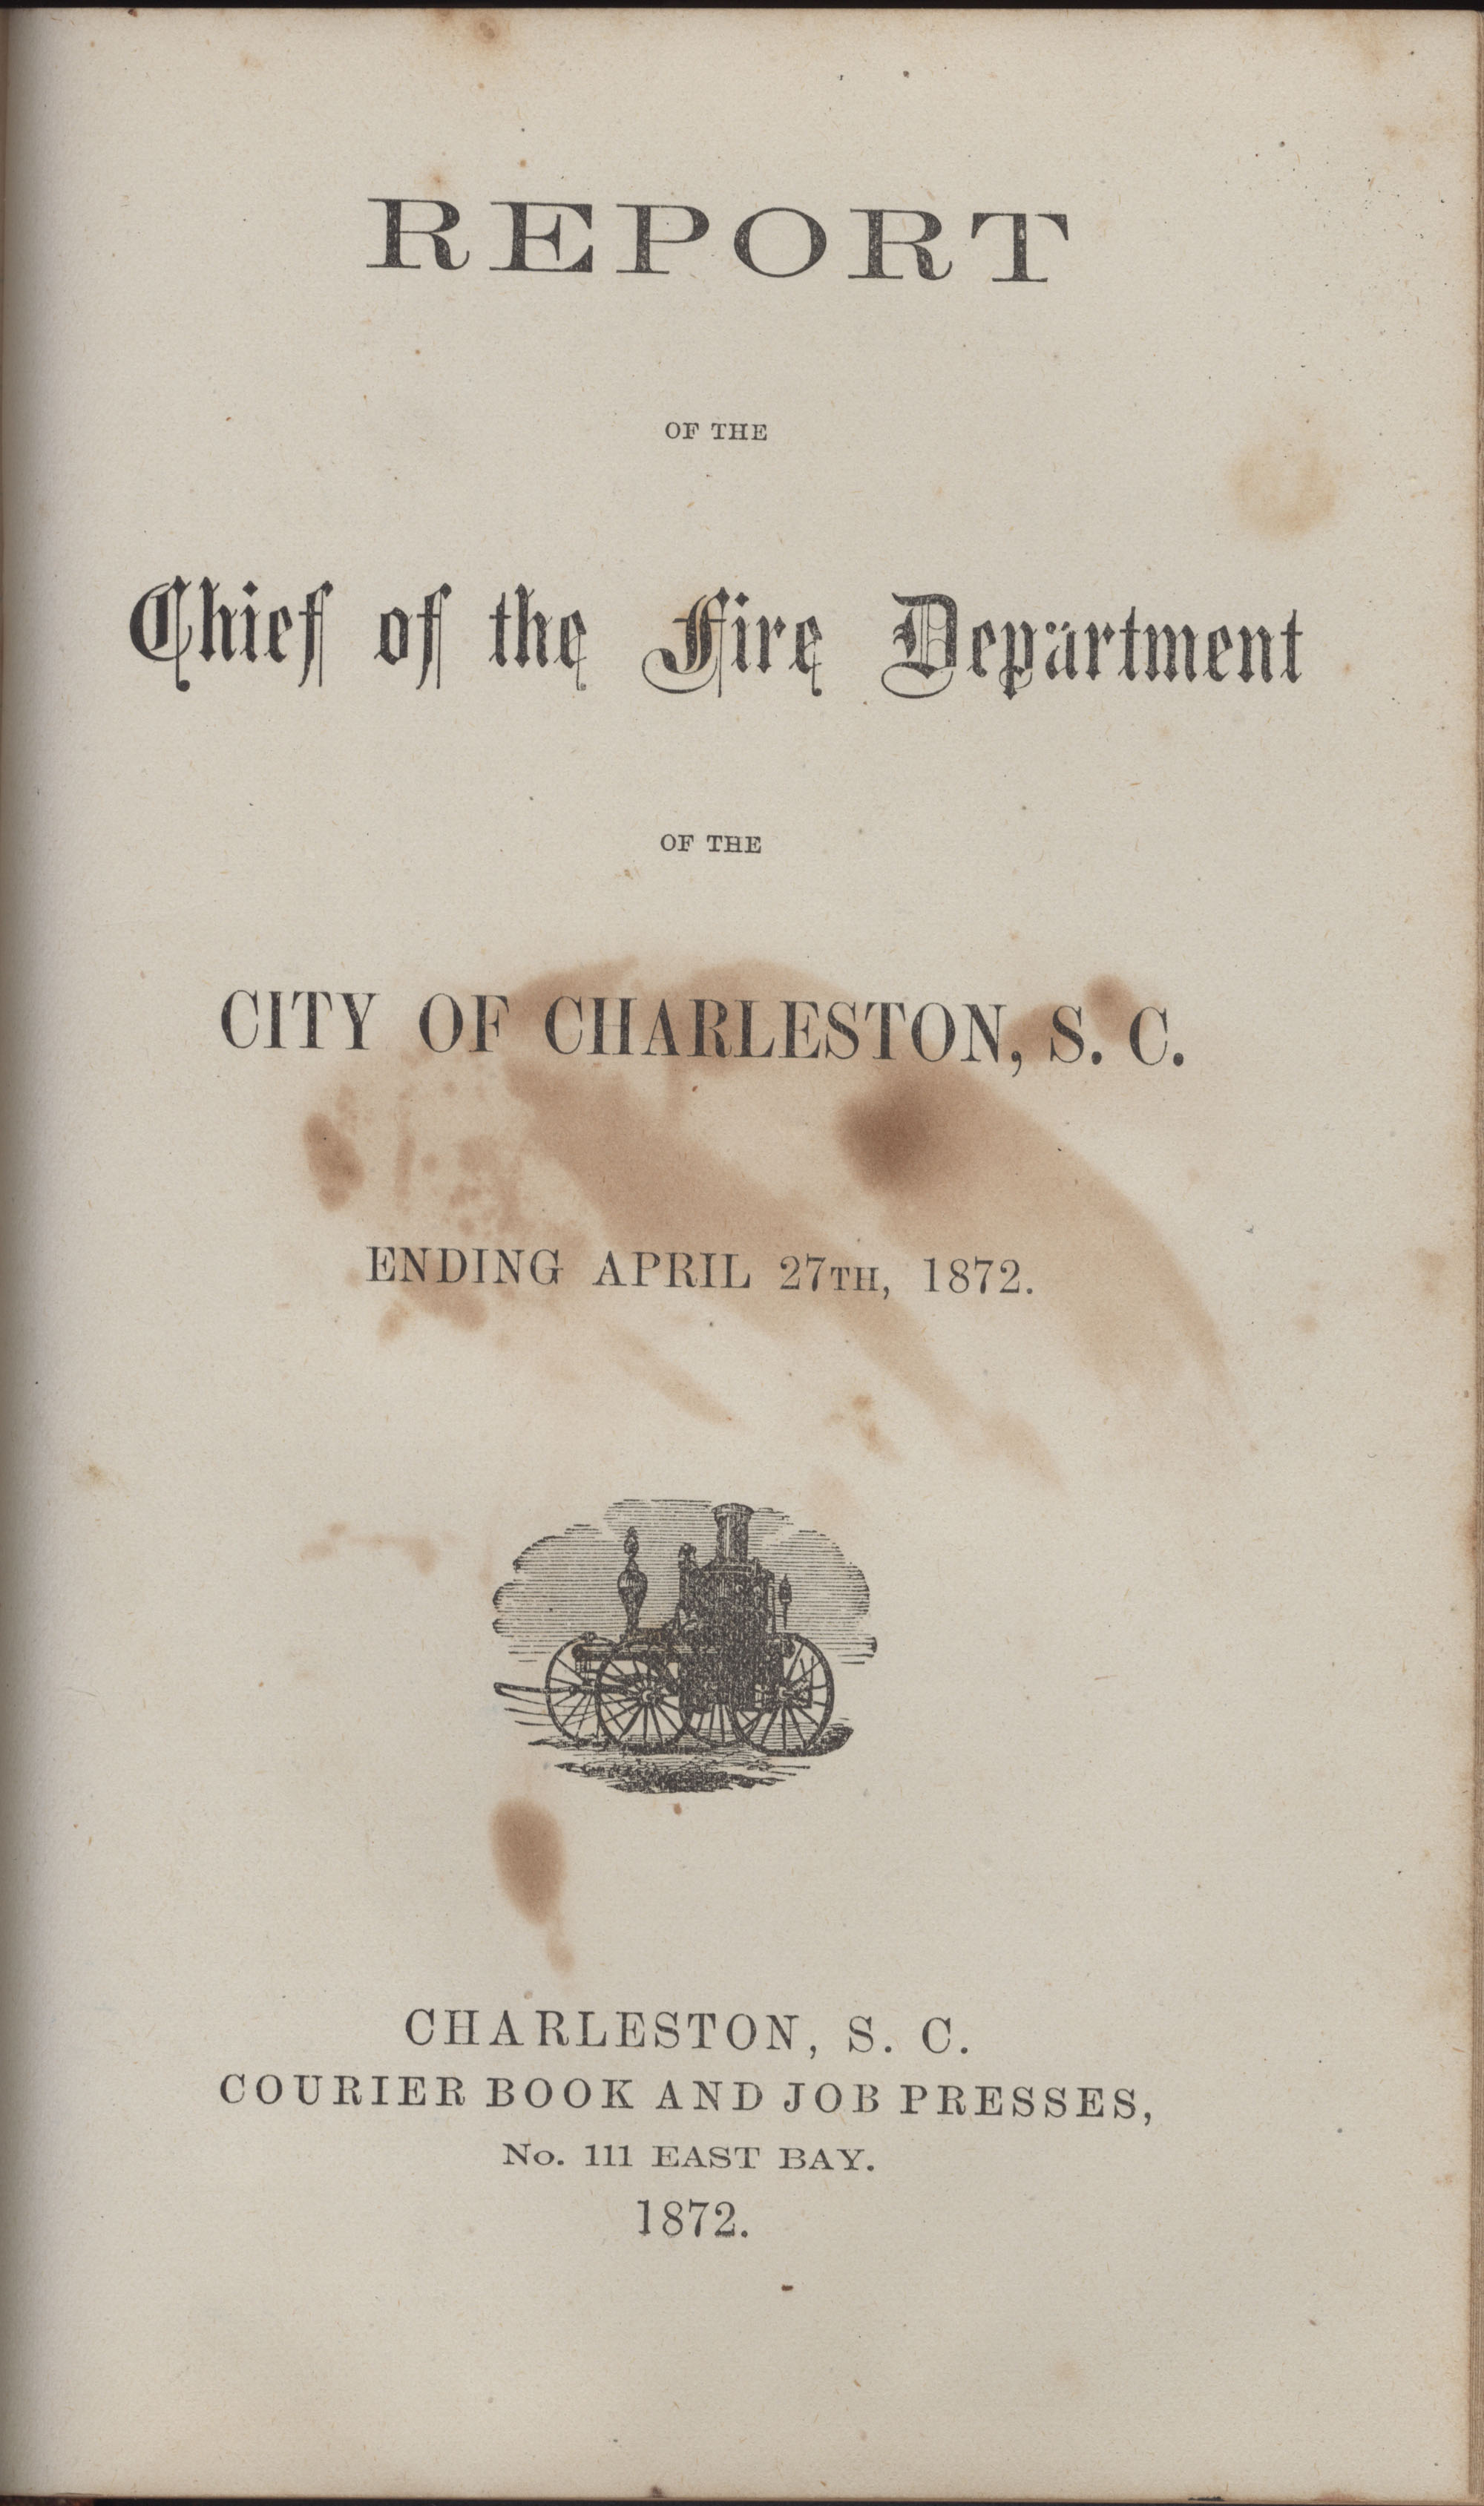 Annual Report of the Chief of the Fire Department of the City of Charleston, page 398